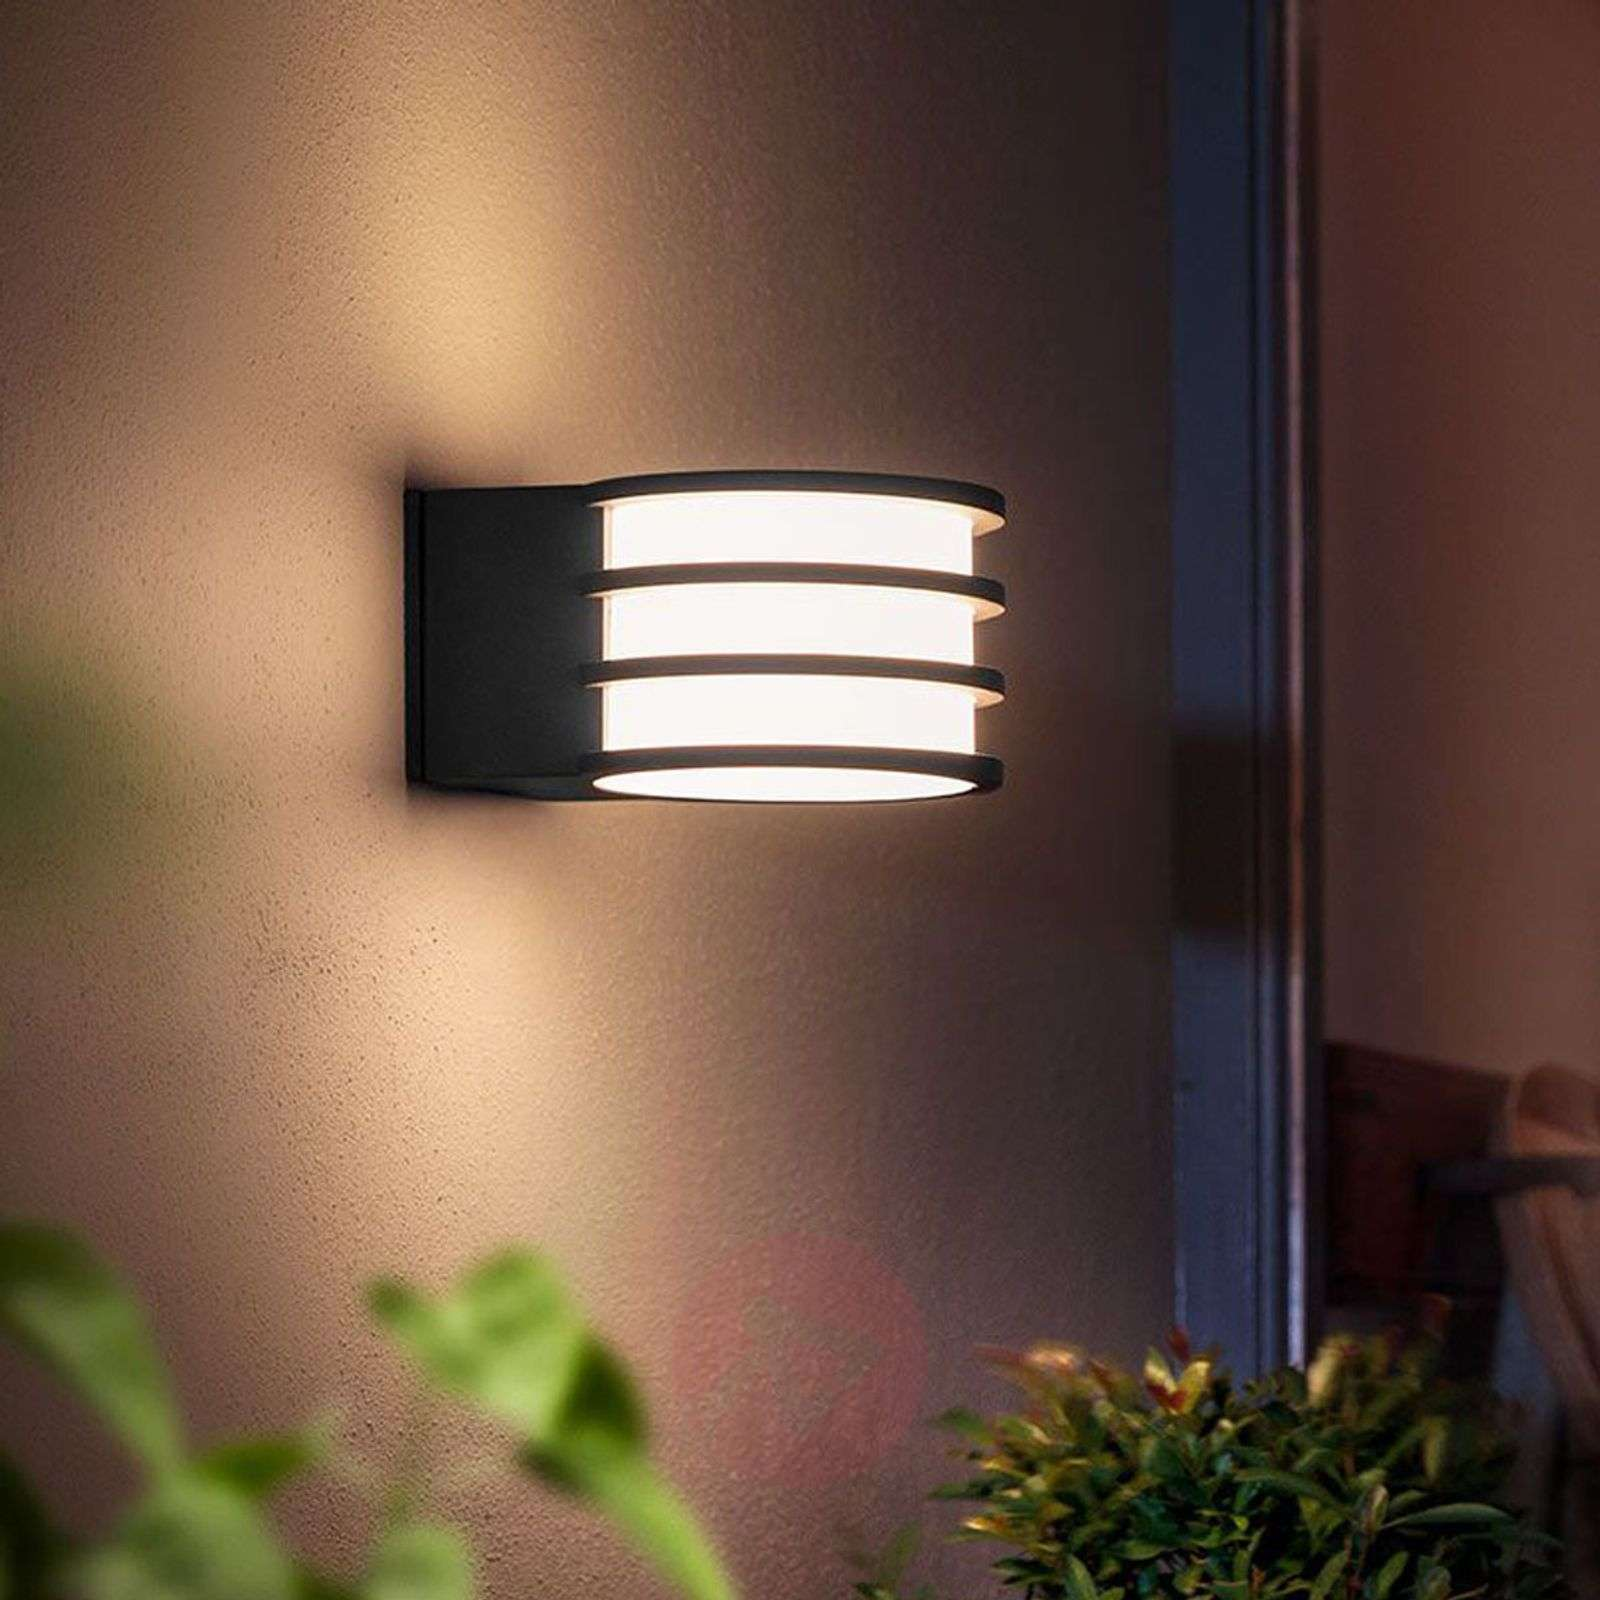 Plafoniere A Led Per Bagno Philips : Acquista philips hue applique da esterni led lucca lampade.it